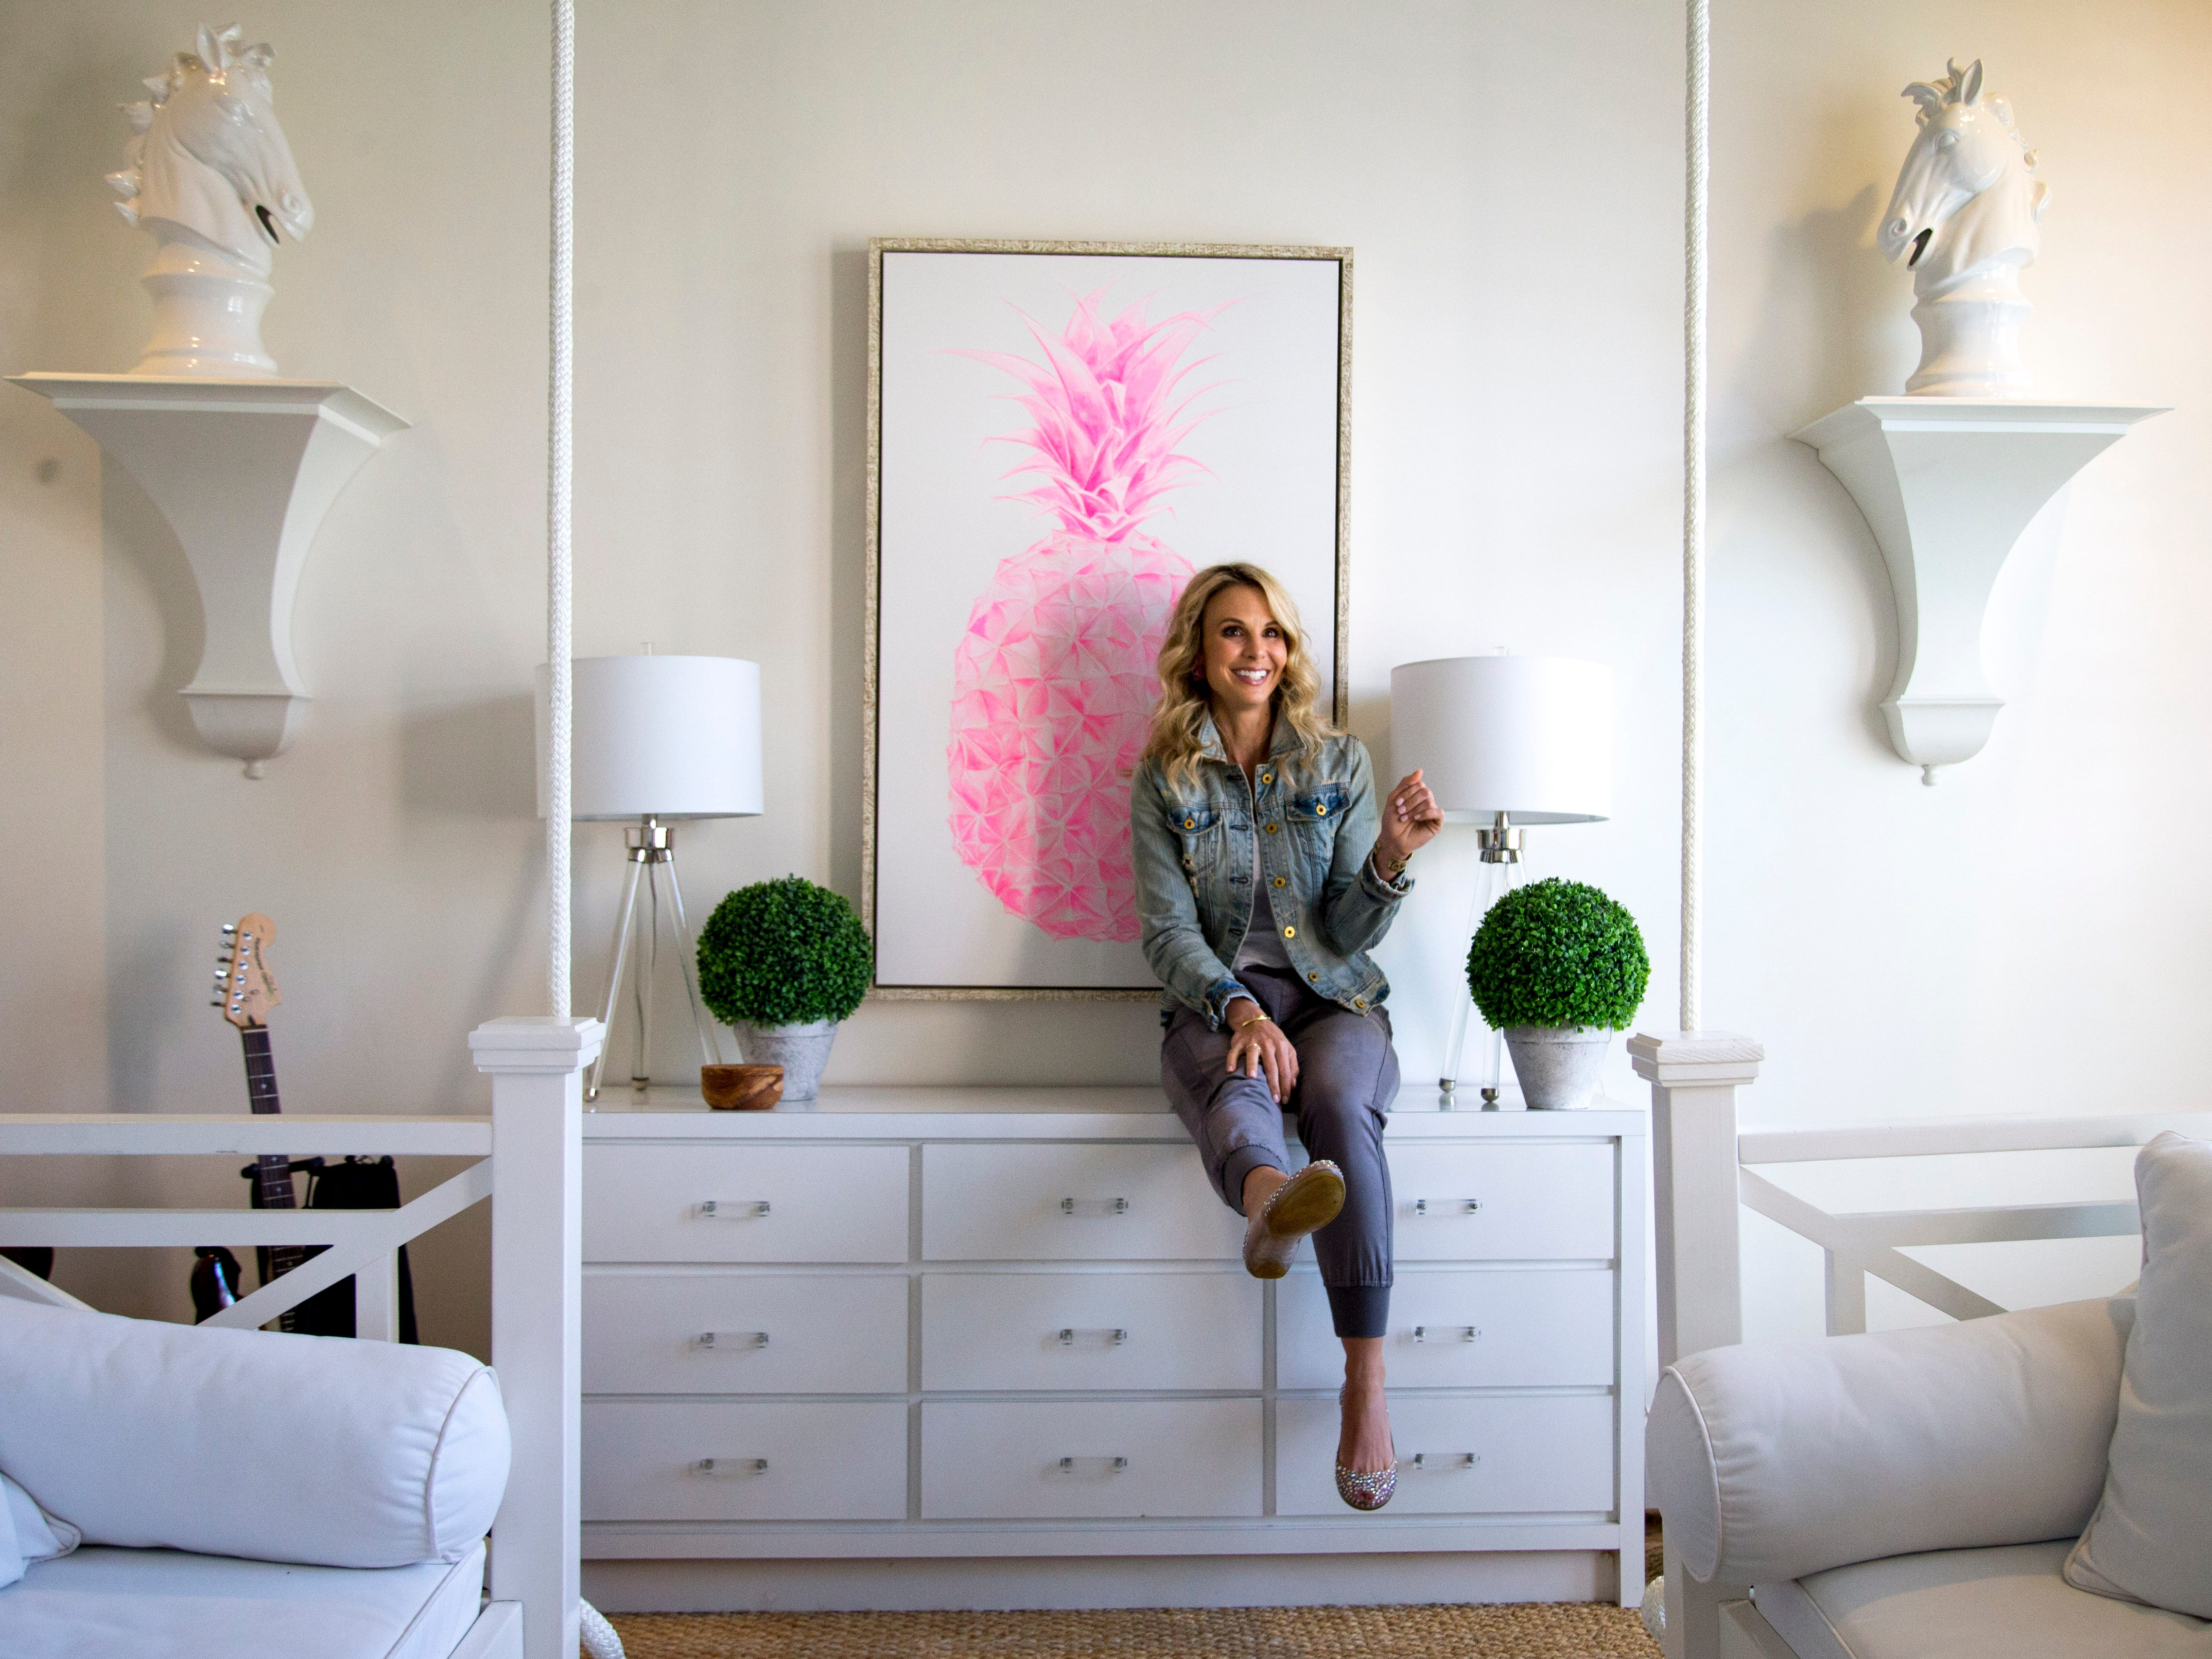 Elisabeth Hasselbeck sits down with a reporter from The Tennessean to talk about her move to Nashville and new book at the Hasselbeck's home, in Nashville, Tenn., on Monday, March 4, 2019.